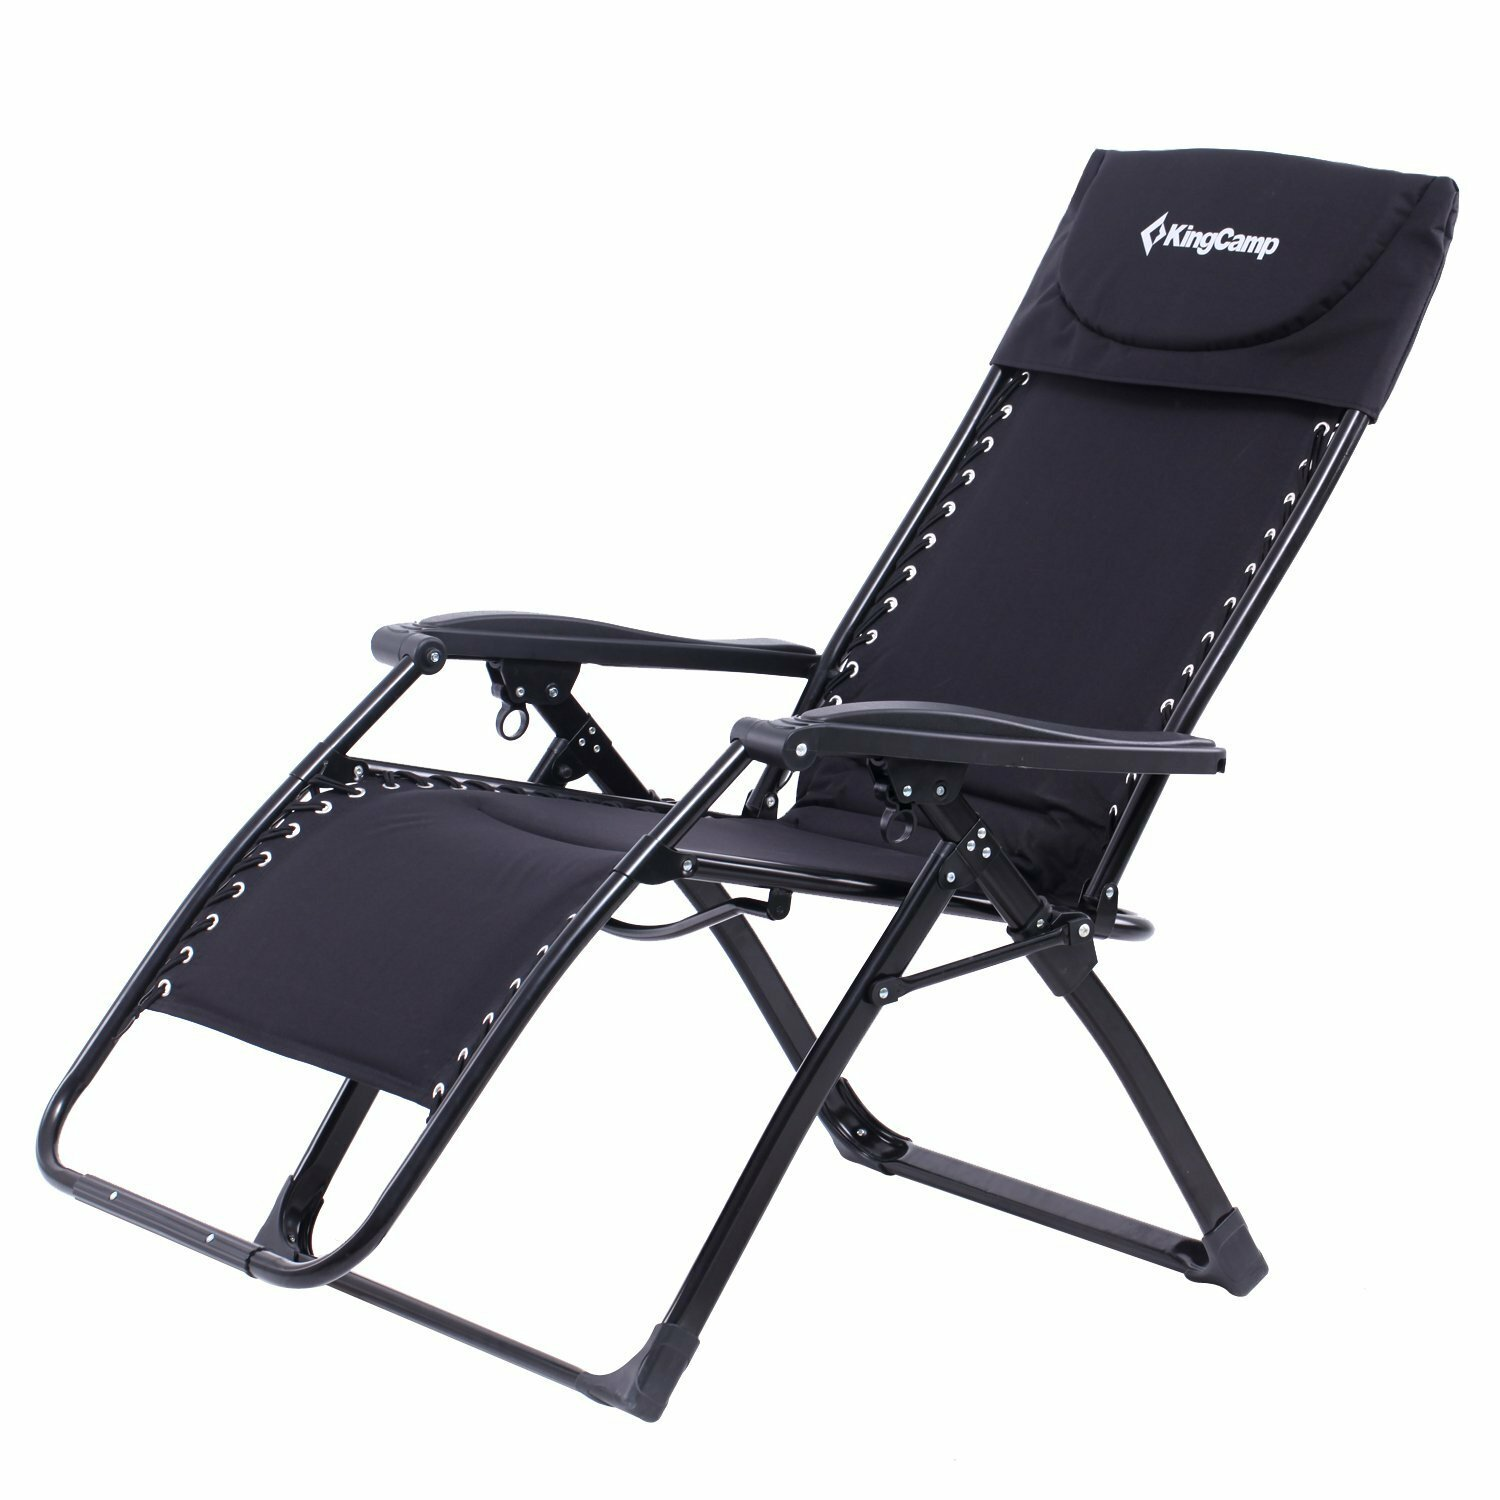 Alyssandra heavy duty reclining zero gravity chair